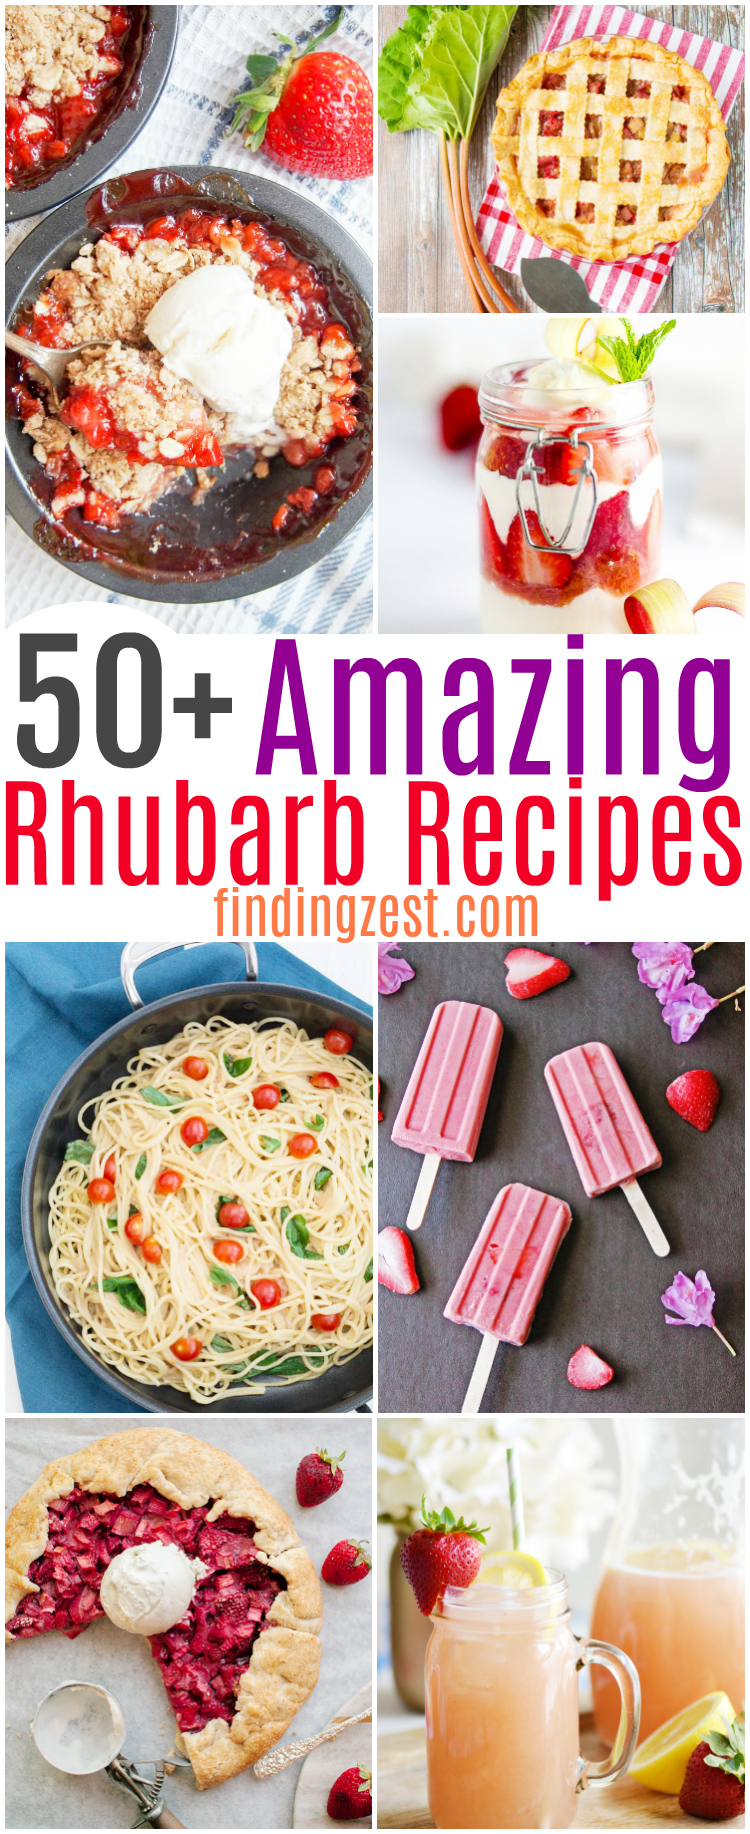 Not sure what to do with all that rhubarb you harvest? Get over 50 rhubarb recipes worth making during rhubarb season! These are the the best rhubarb recipes. From classic rhubarb desserts to healthy rhubarb recipes, this list has everything you need to use up that rhubarb!